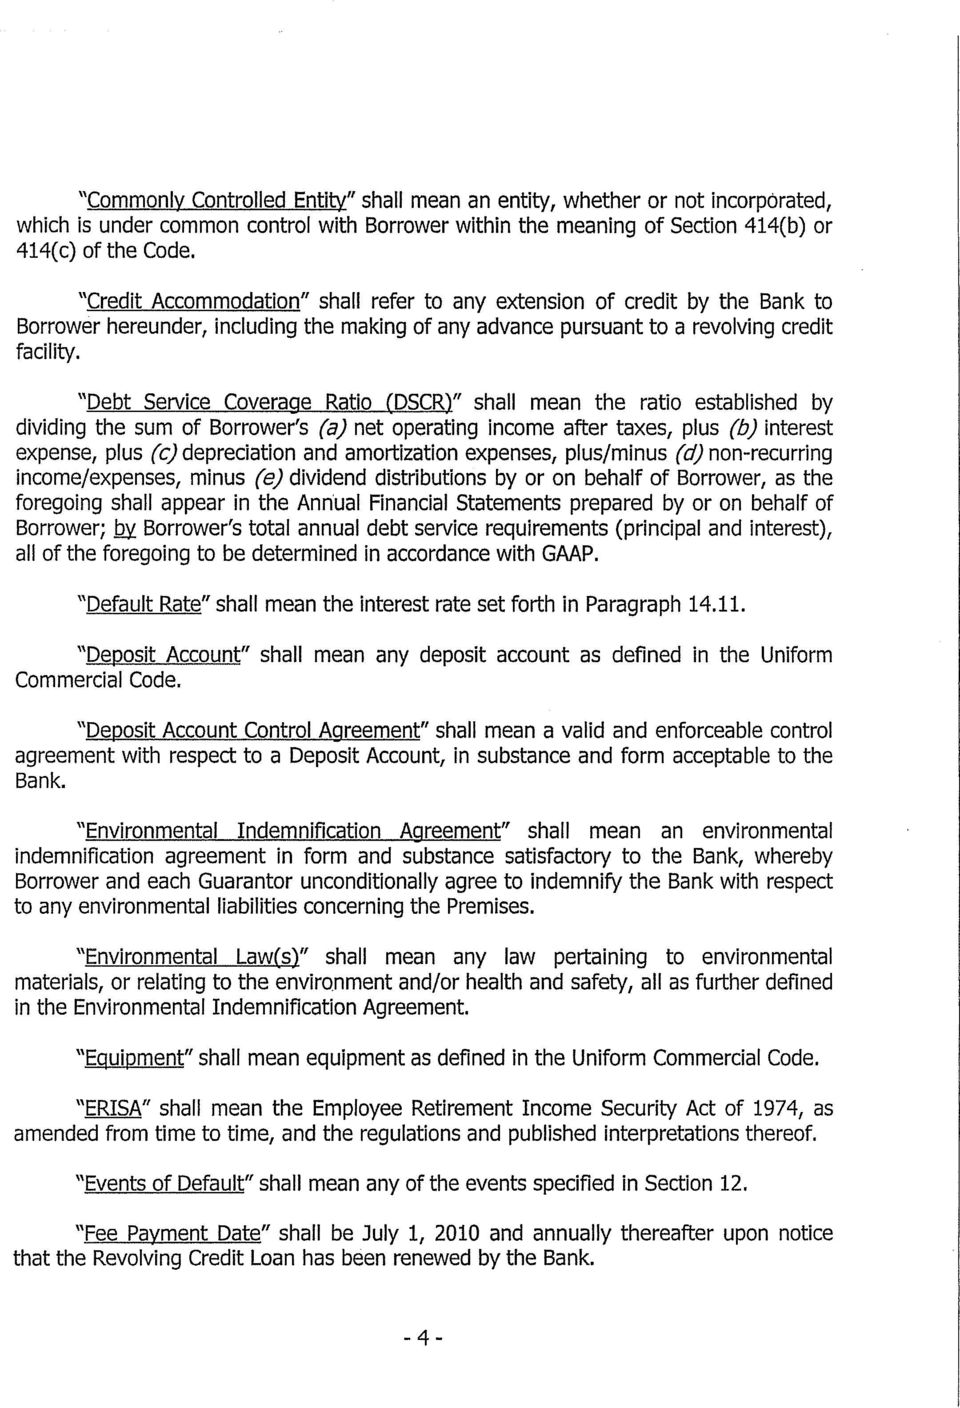 This Amended And Restated Loan Agreement Agreement Is Made This